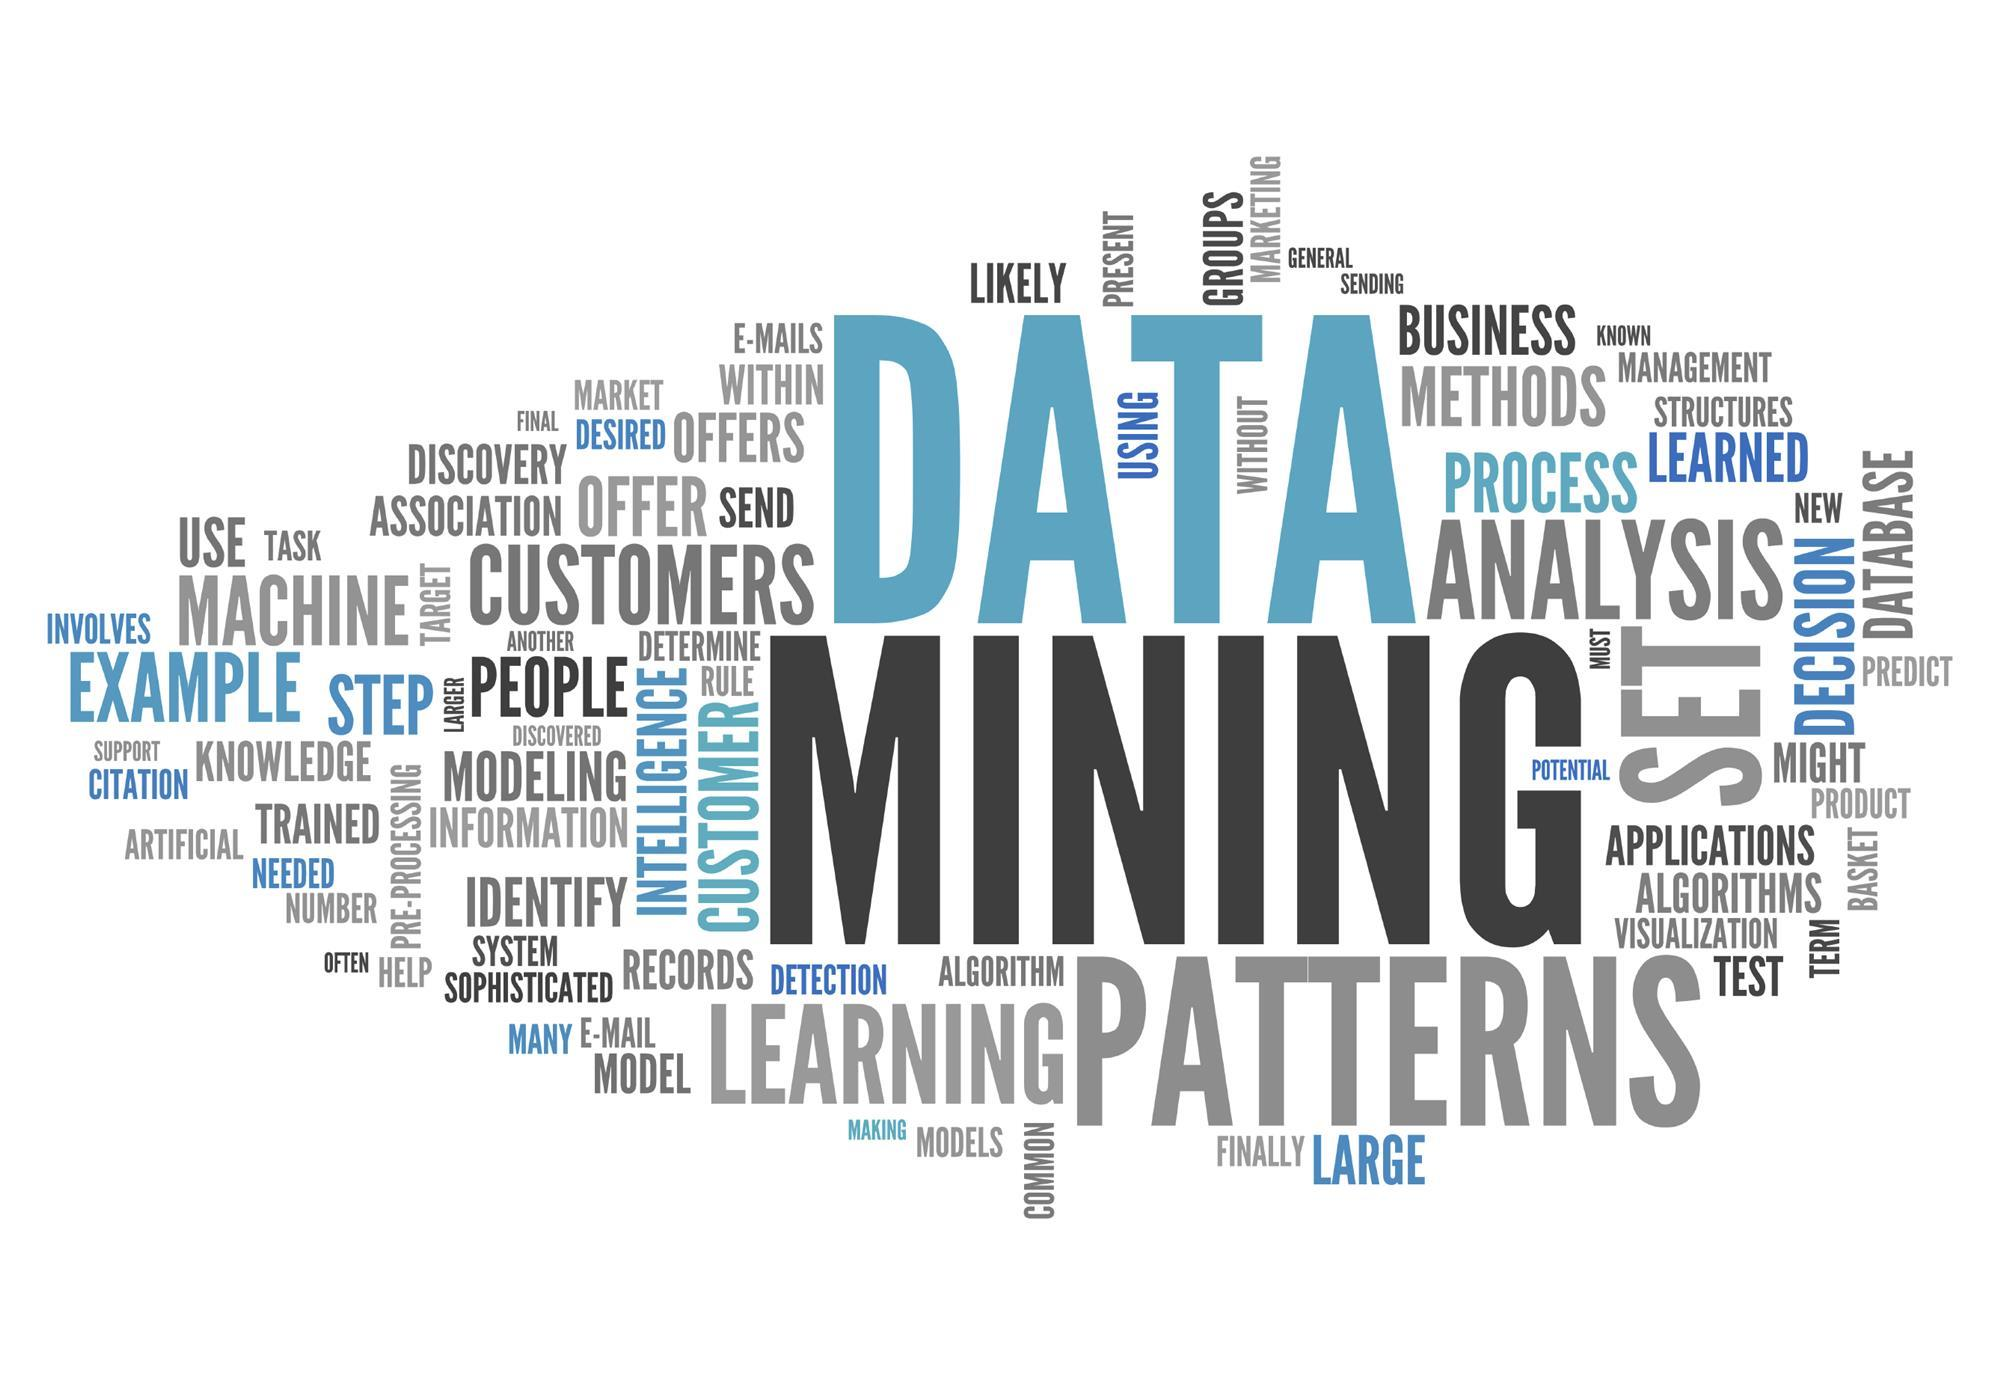 data mining thesis report Data mining and analysis techniques to deduce information about people based on smartphone sensor records of their movements [11, 12, 34] data mining is a technique.